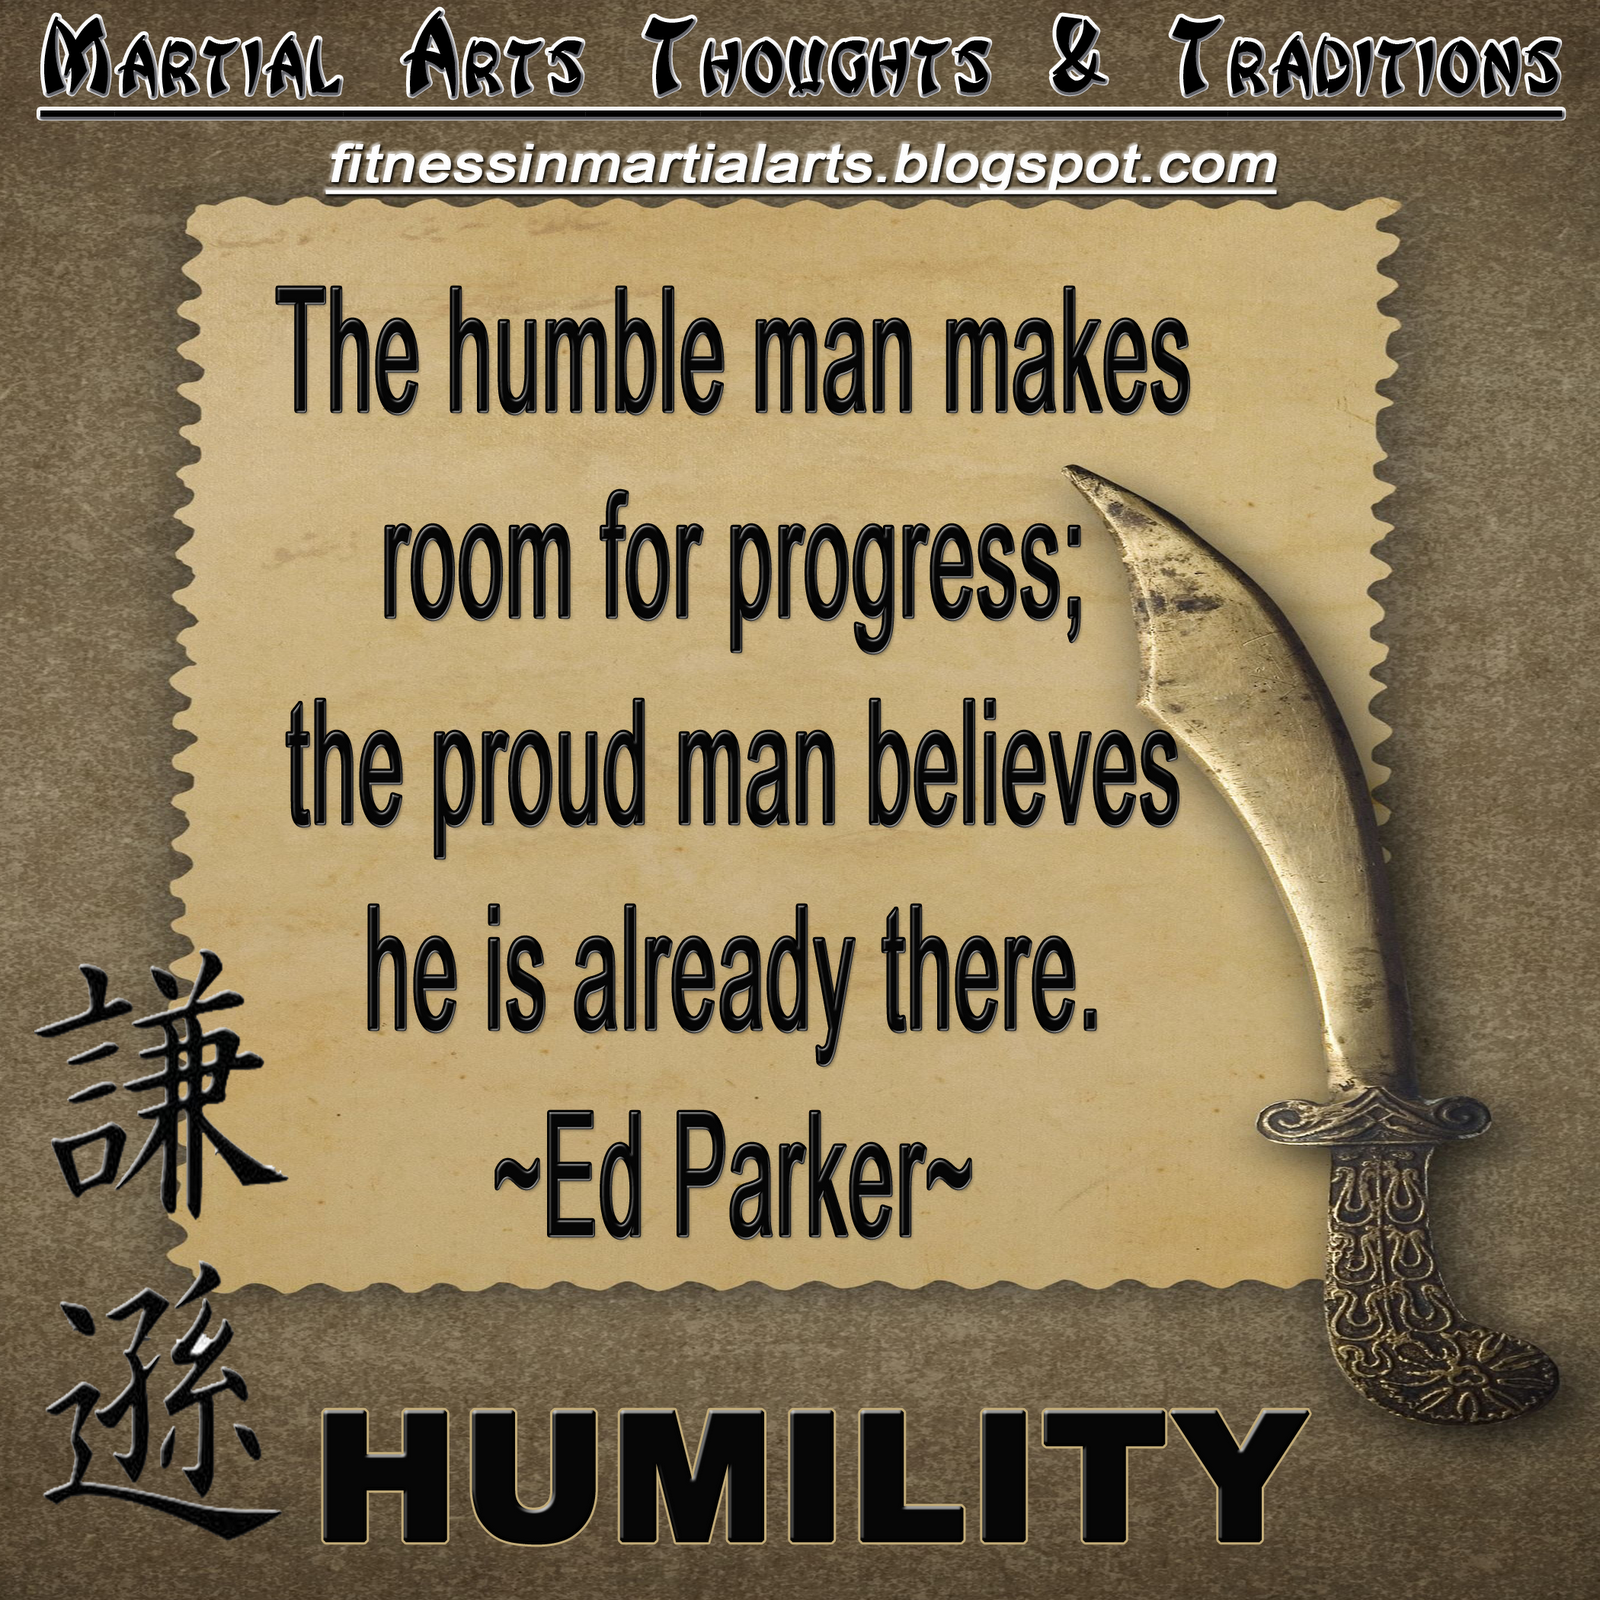 Humble Definition: What Is The Opposite Of Humble?